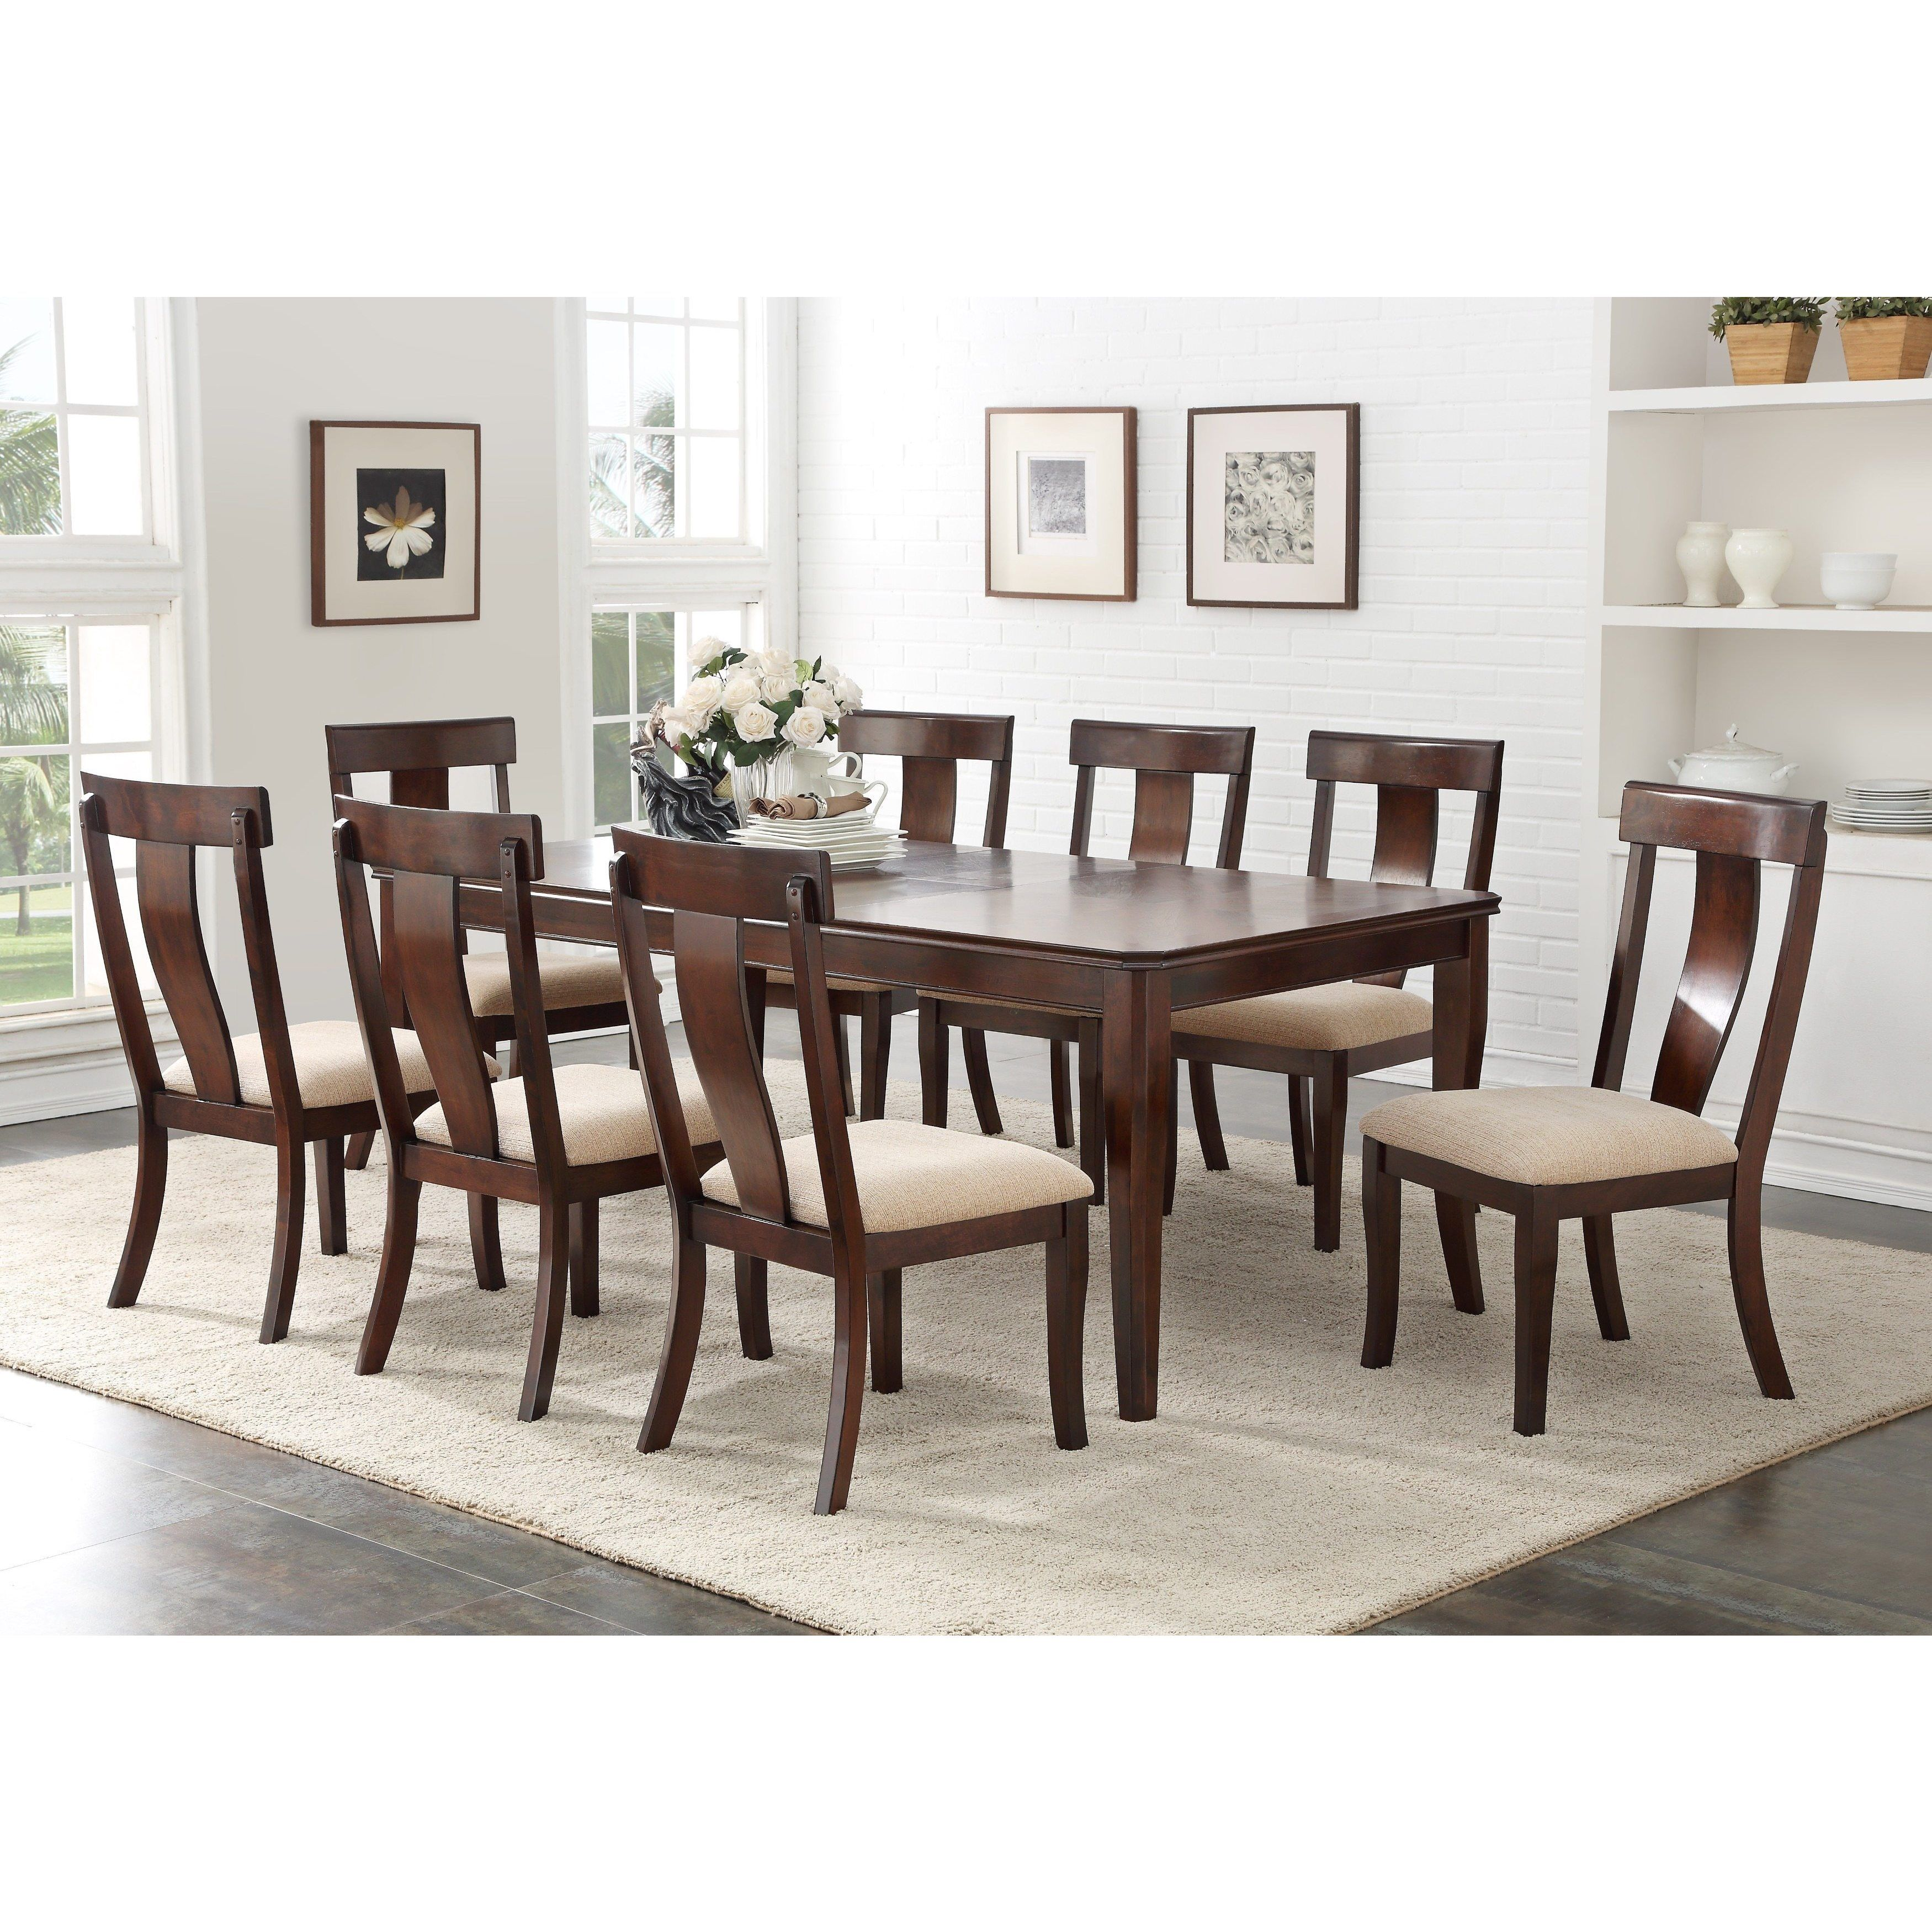 K And B Furniture Co Inc Cherry Wood Dinette Dining Room Side